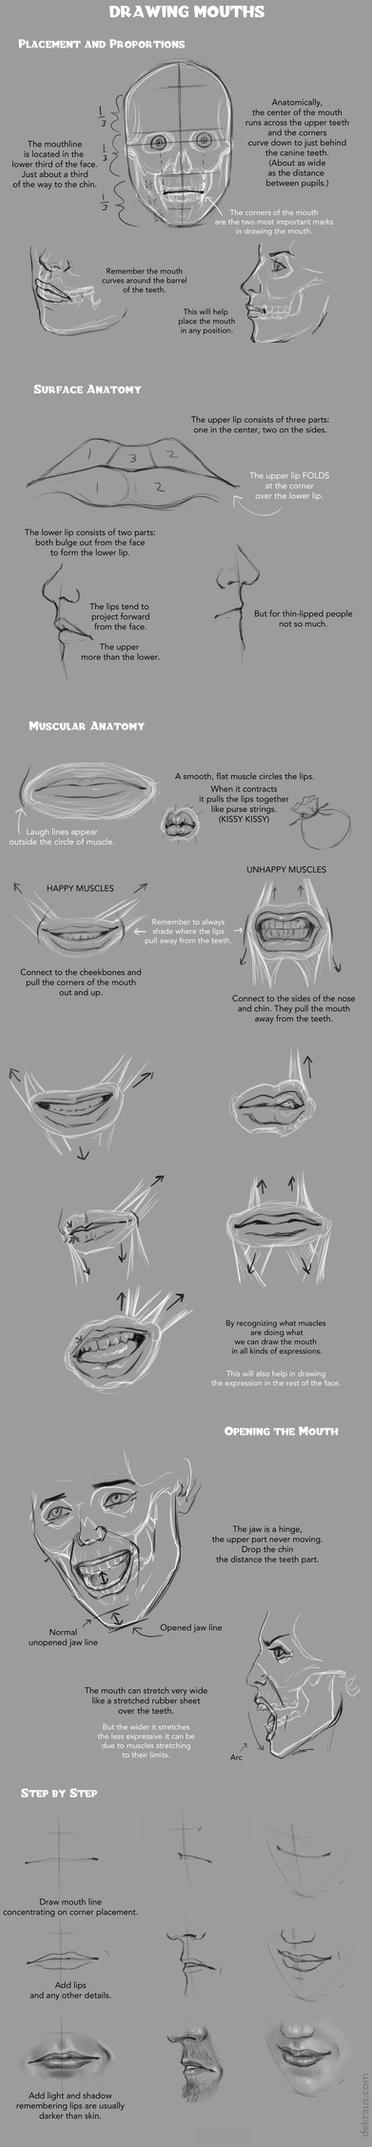 Drawing Mouths Tutorial by banjodi